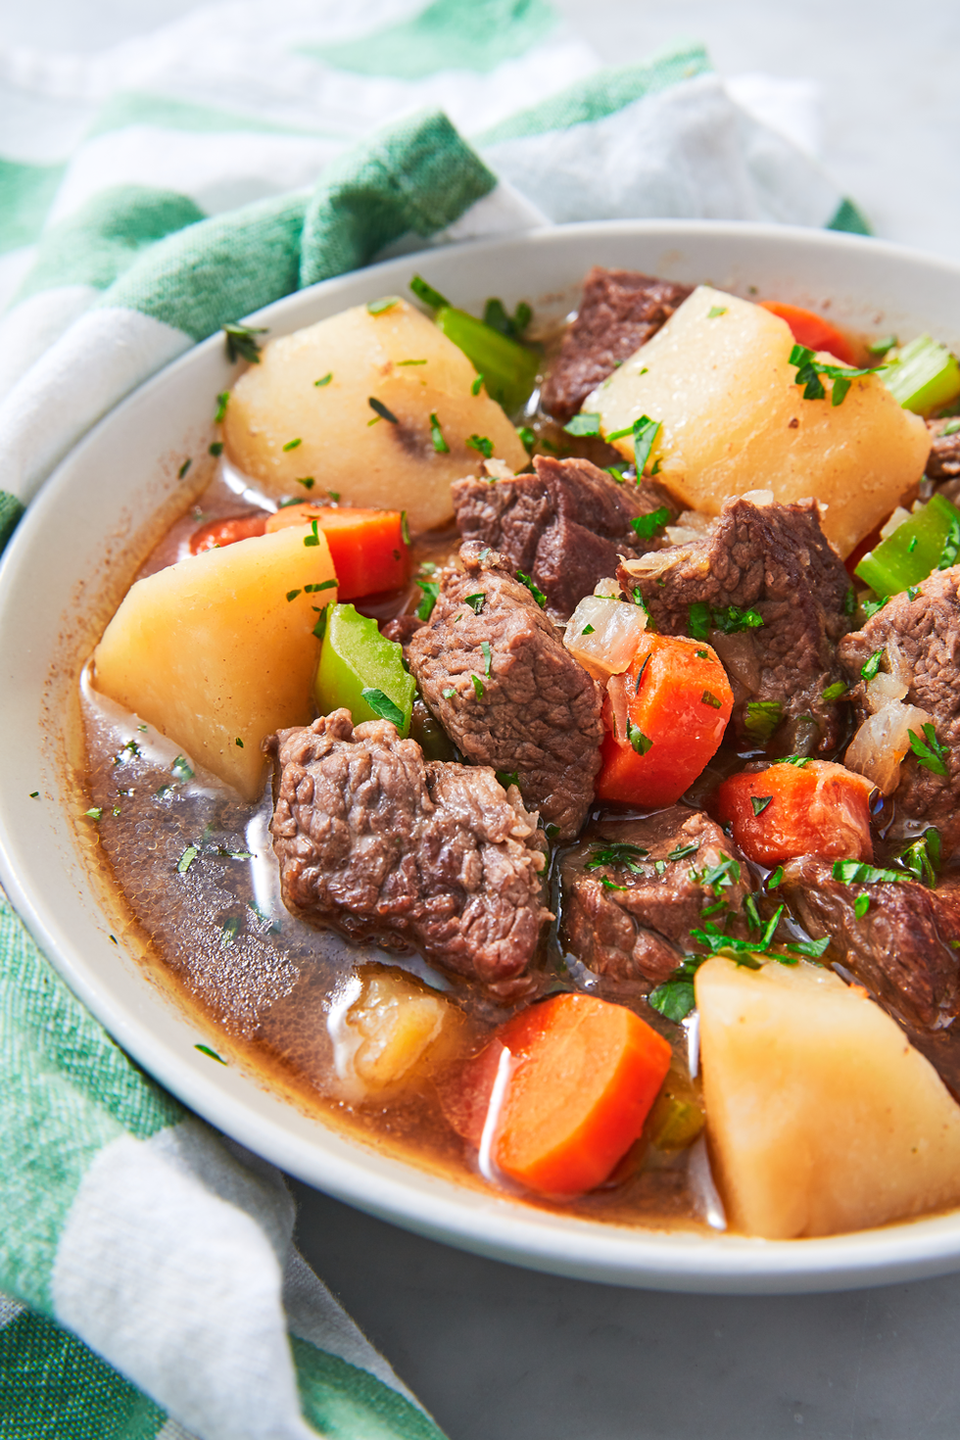 """<p>It doesn't get much cozier than this.</p><p>Get the recipe from <a href=""""https://www.delish.com/cooking/recipe-ideas/a26258692/irish-stew-recipe/"""" rel=""""nofollow noopener"""" target=""""_blank"""" data-ylk=""""slk:Delish"""" class=""""link rapid-noclick-resp"""">Delish</a>.</p>"""